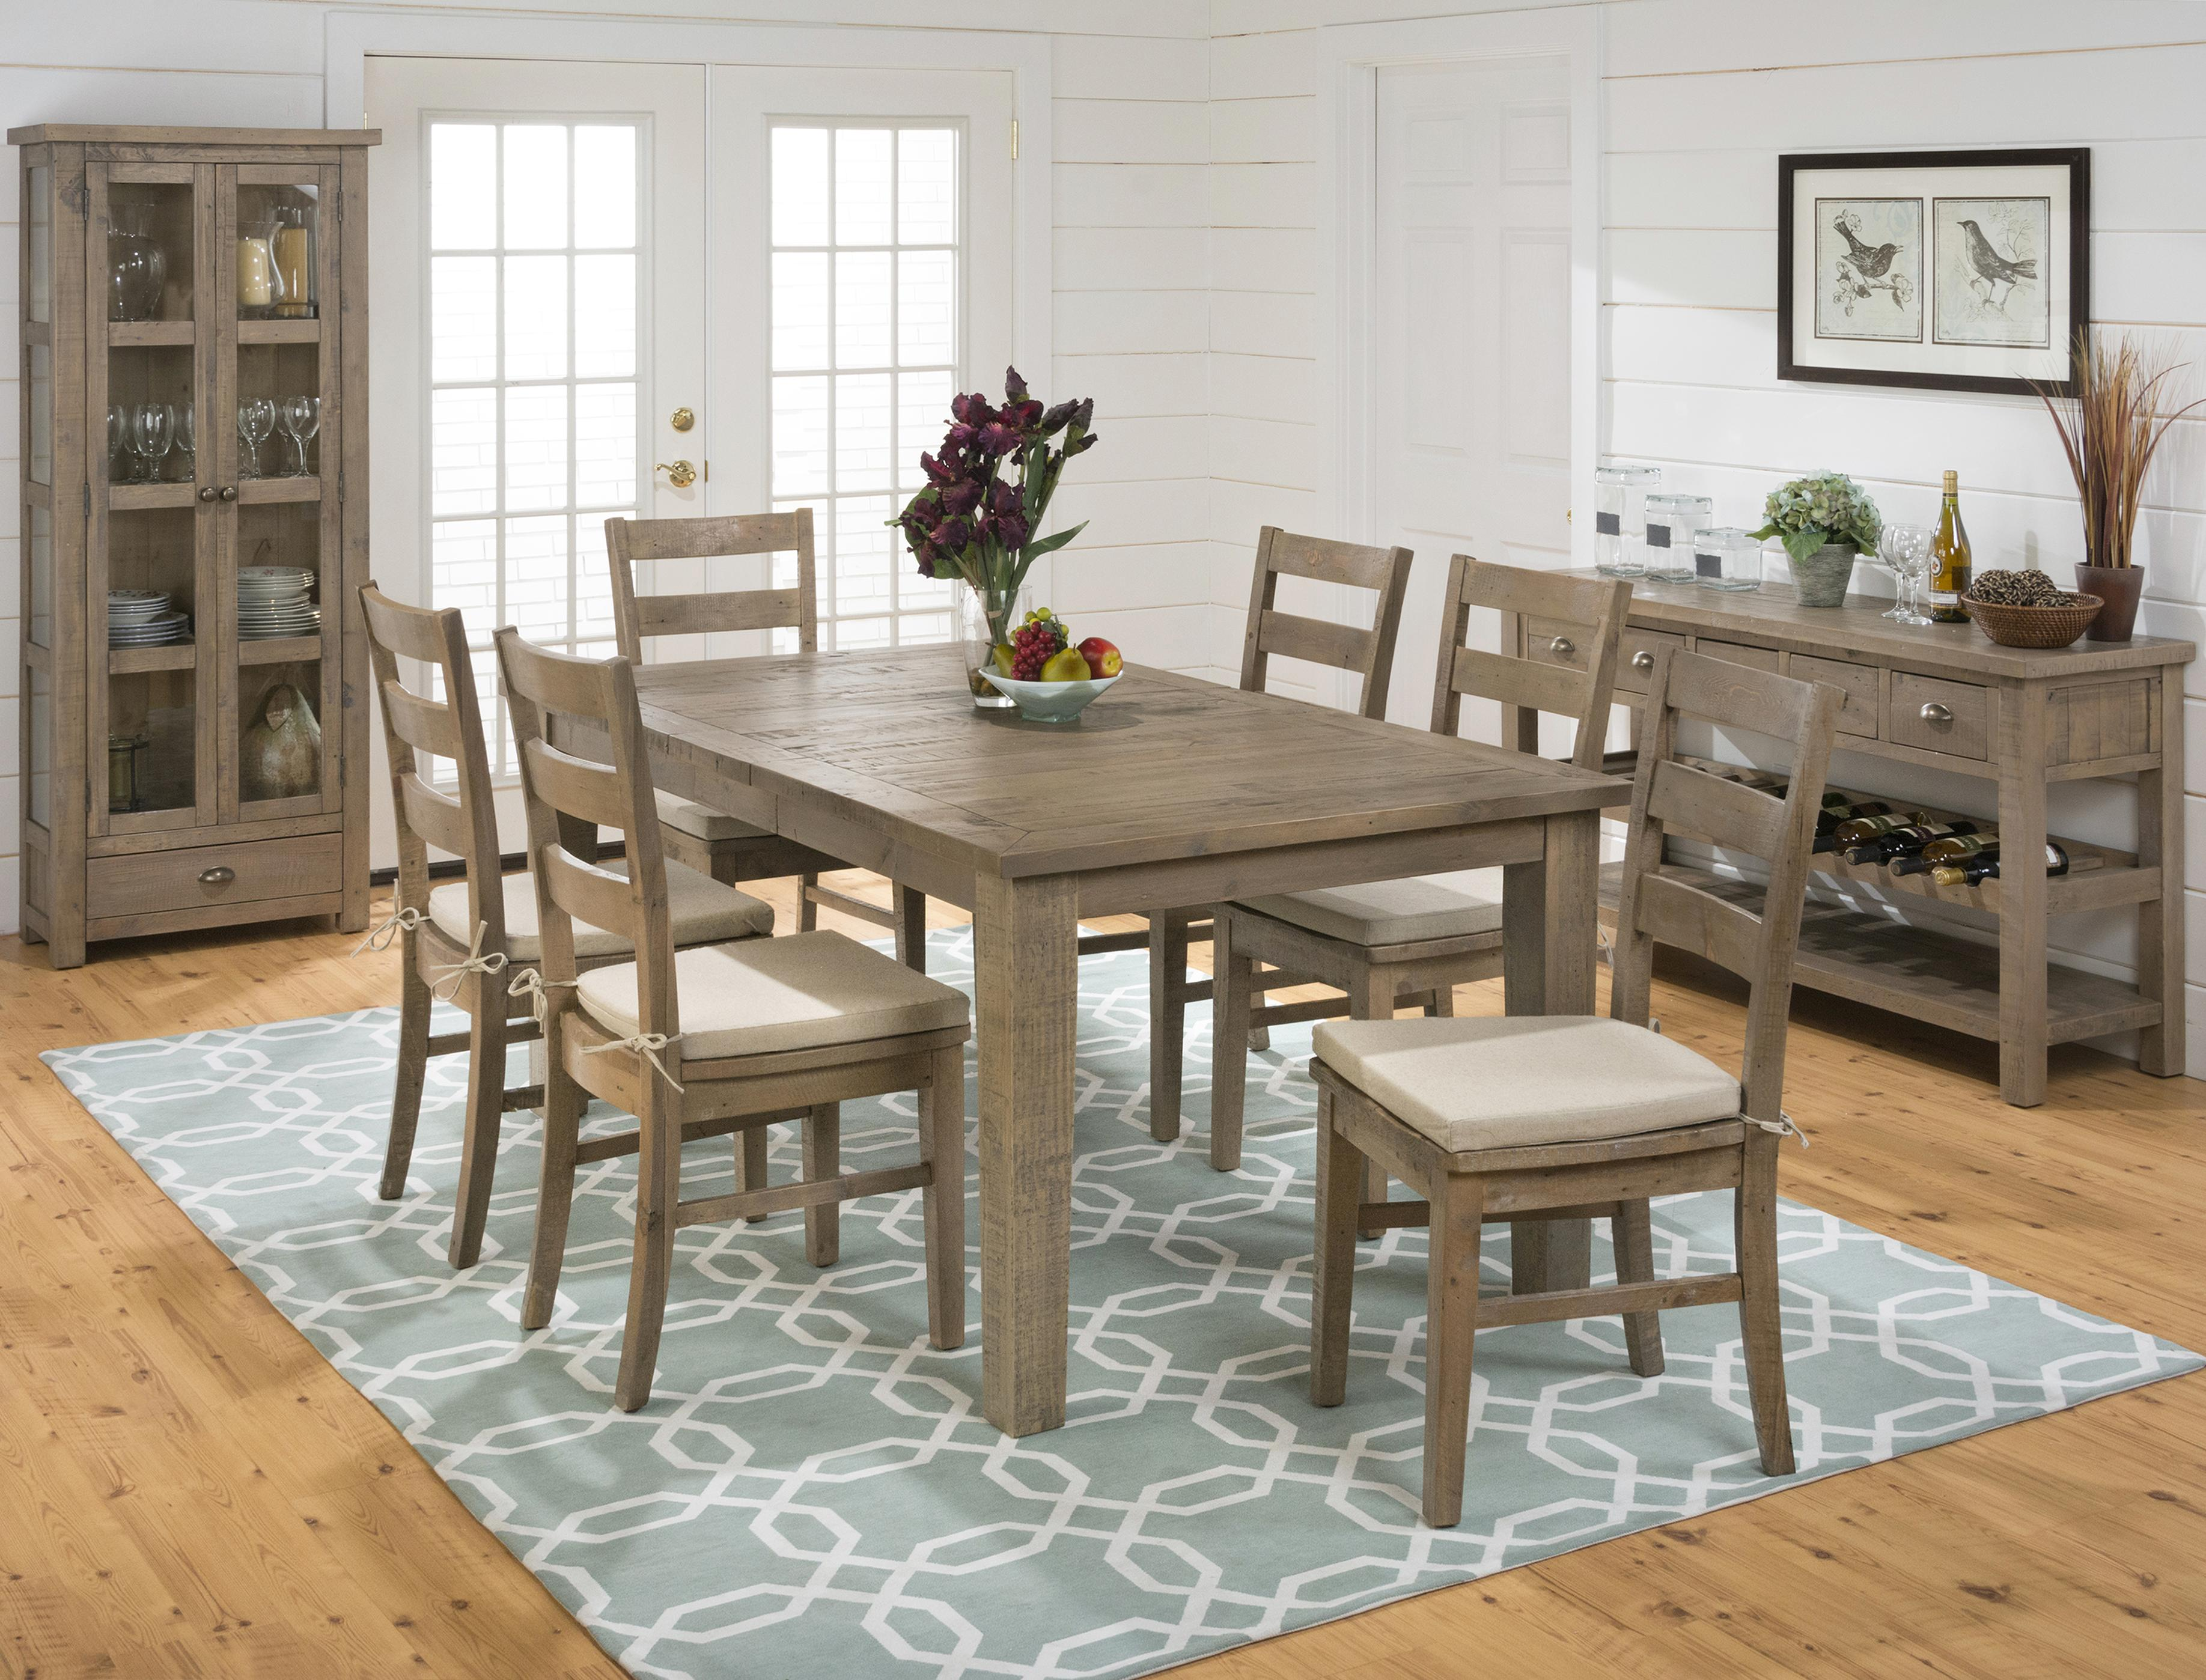 Jofran Bancroft Mills Casual Dining Room Group - Item Number: 941 Dining Room Group 2